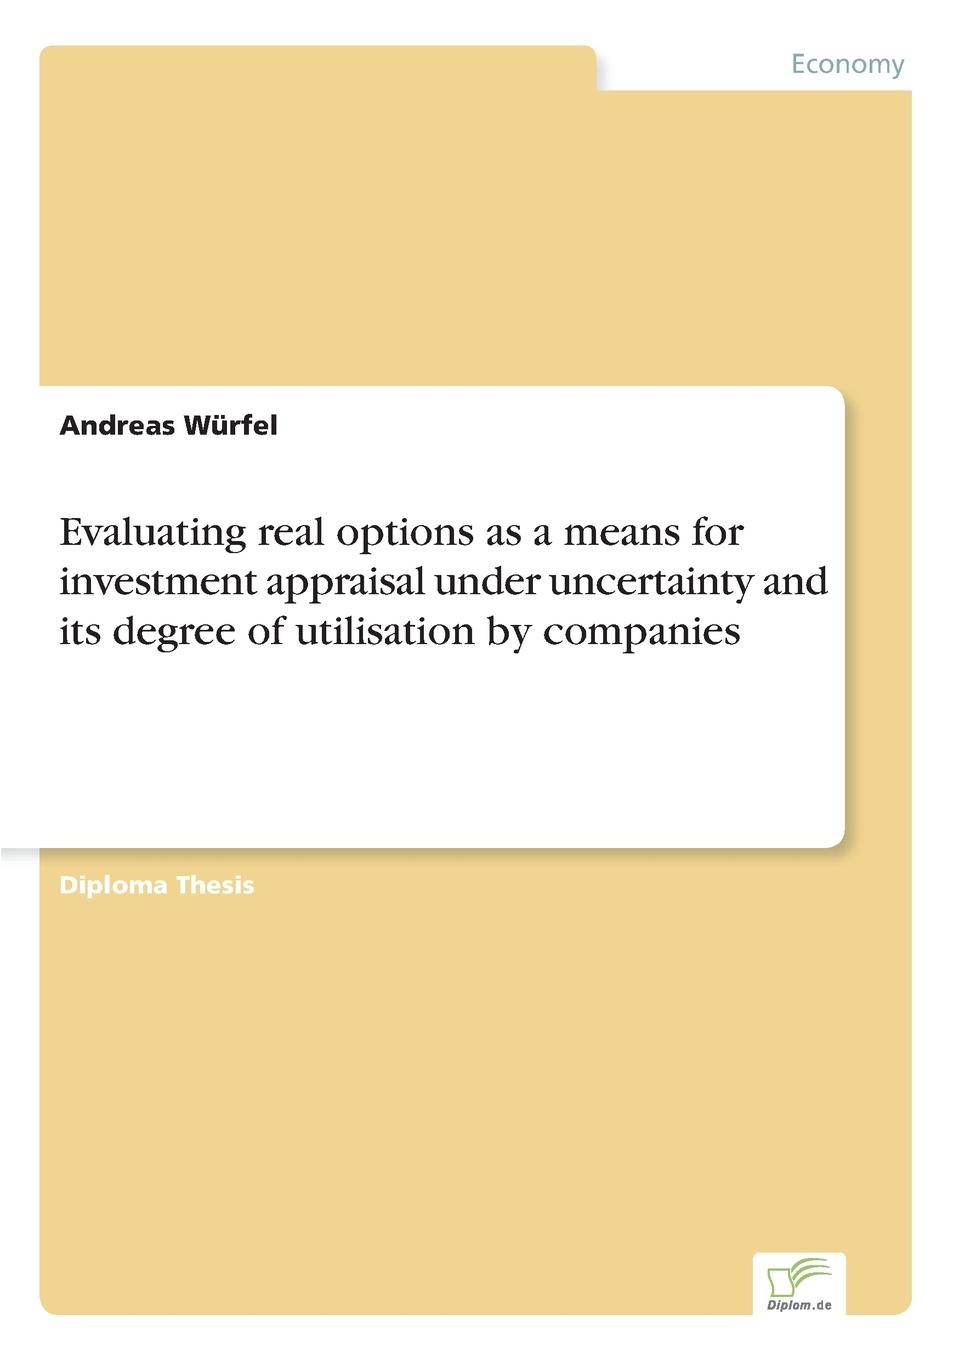 Evaluating real options as a means for investment appraisal under uncertainty and its degree of utilisation by companies Inhaltsangabe:Abstract:This paper evaluates the real options...